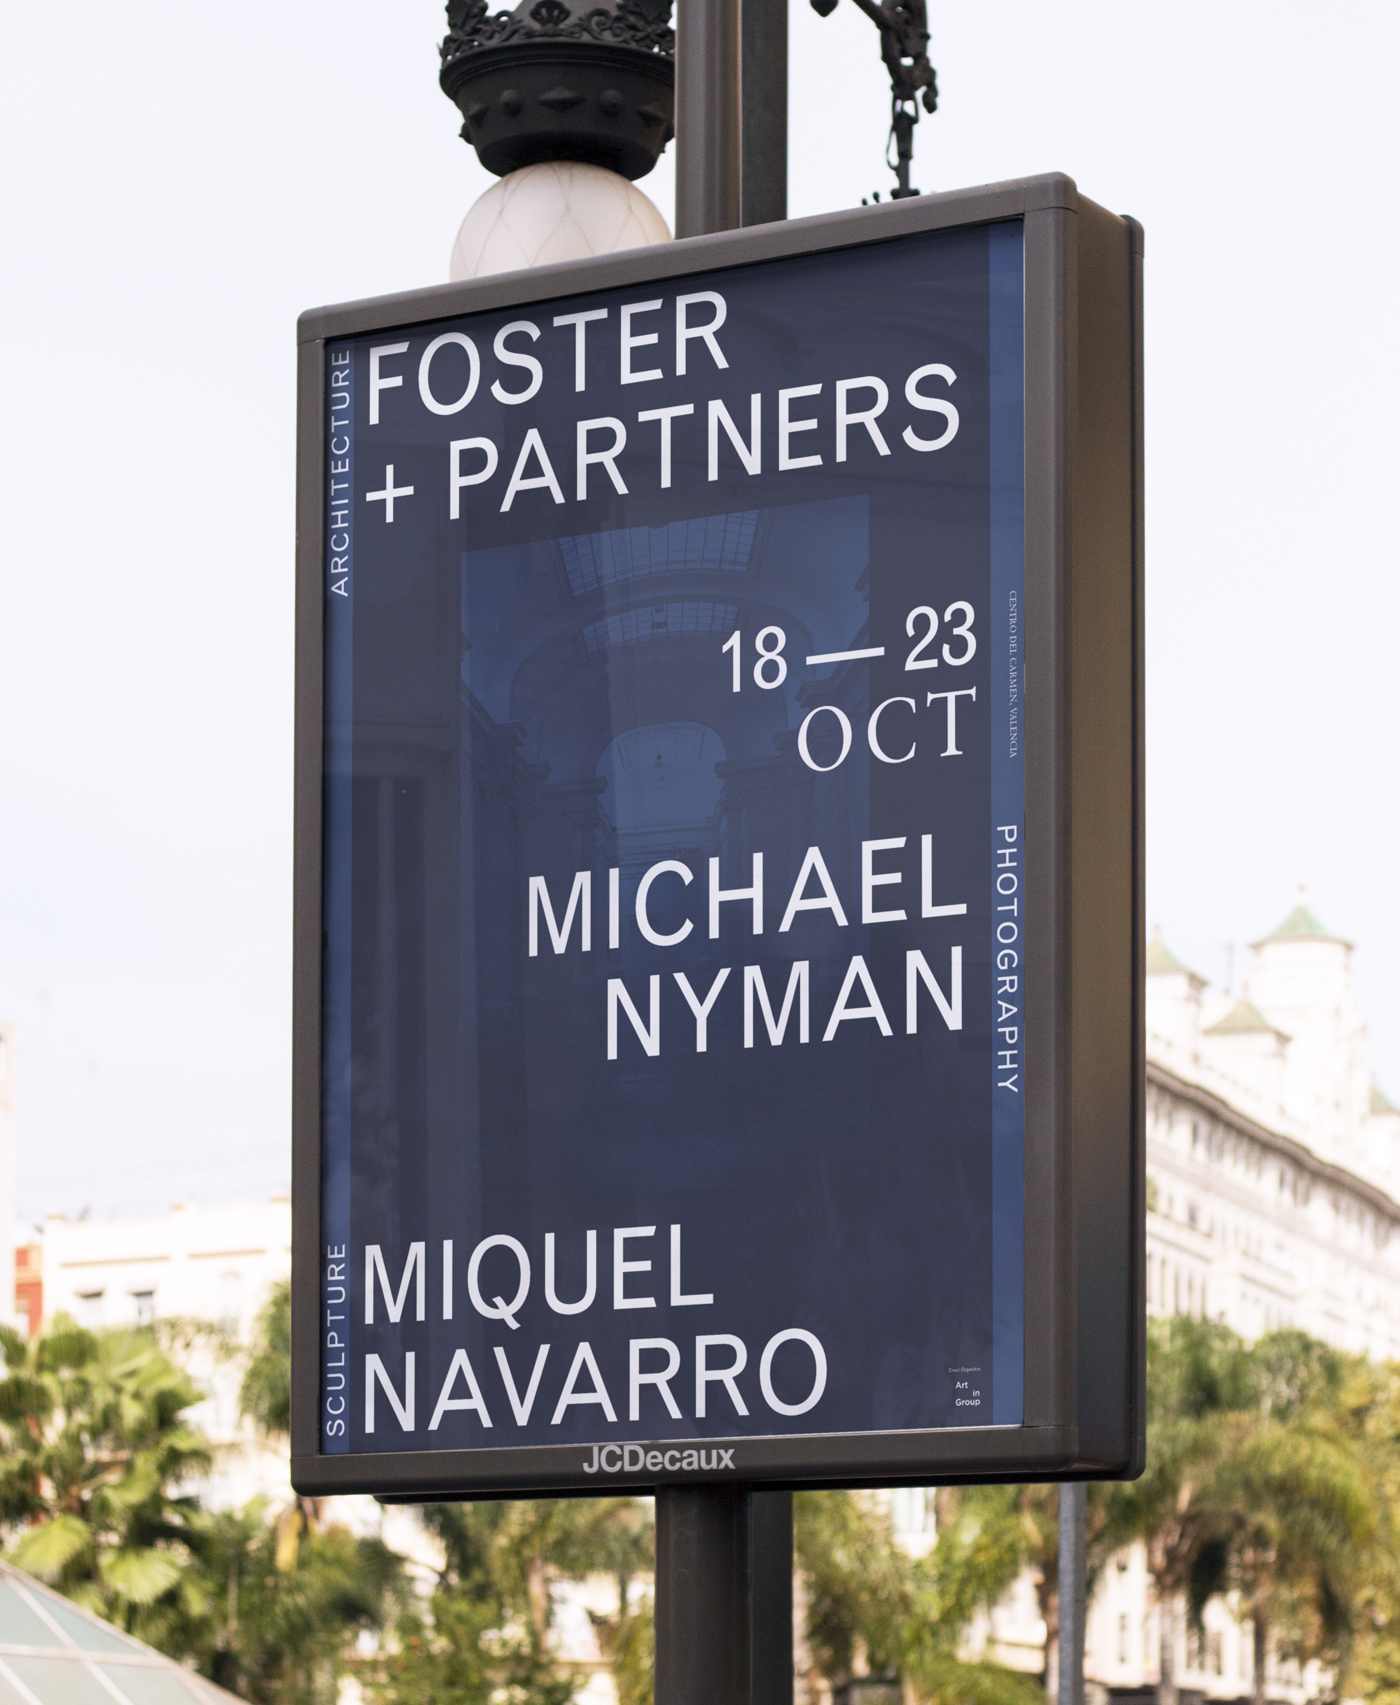 Miradas - Art Exhibition with Foster+Partners, Miguel Navarro and Michael Nyman